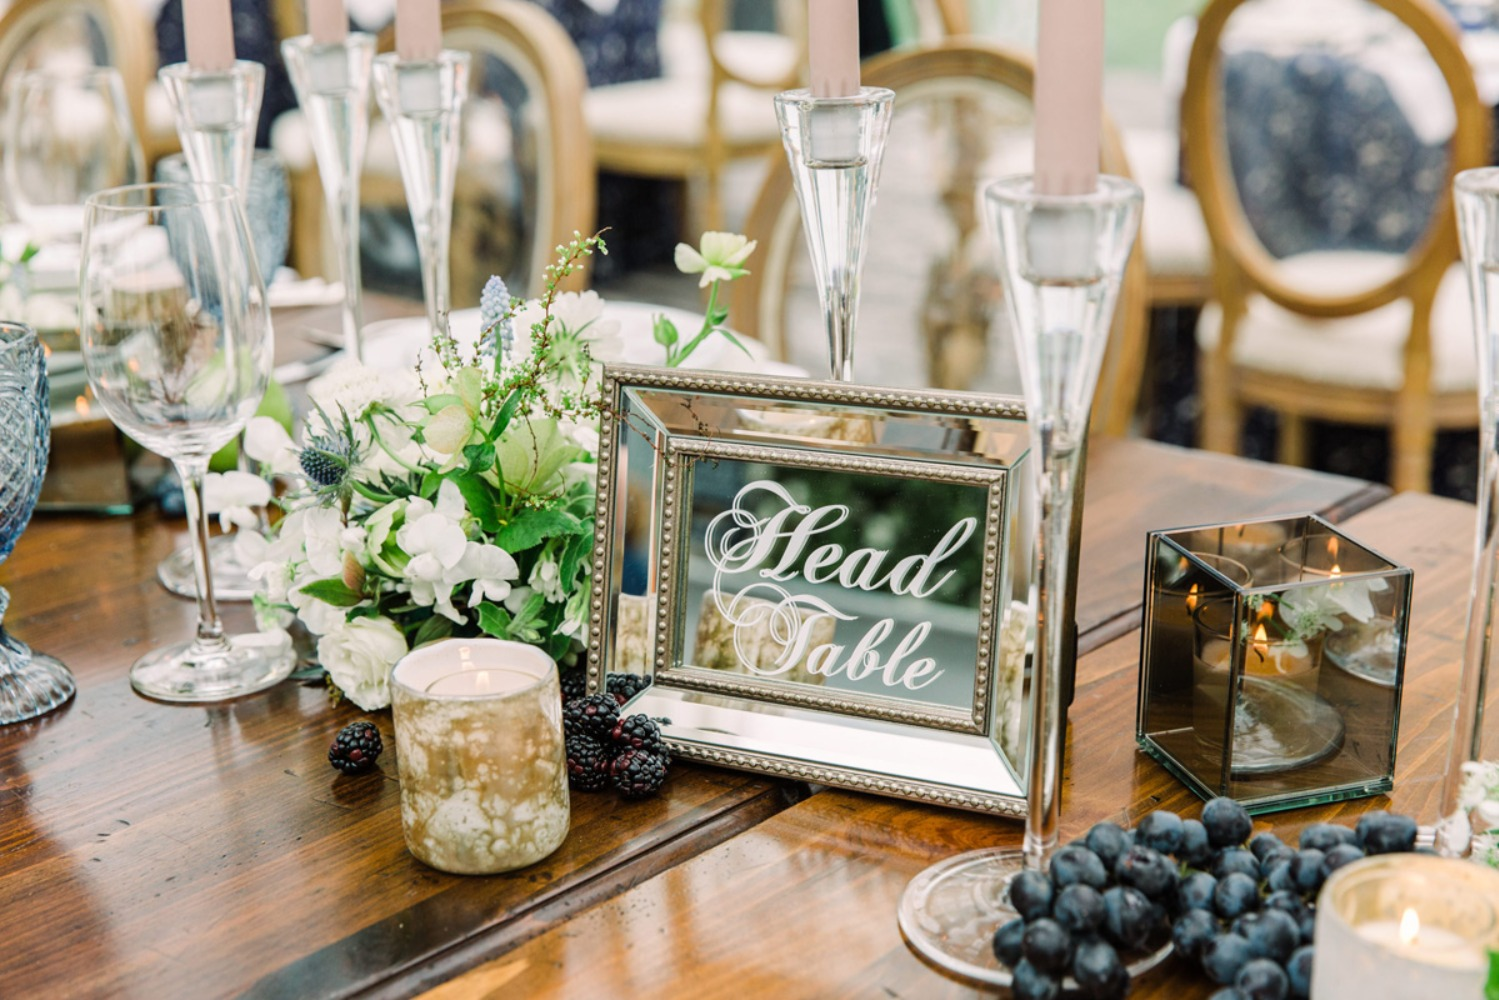 Head table sign idea